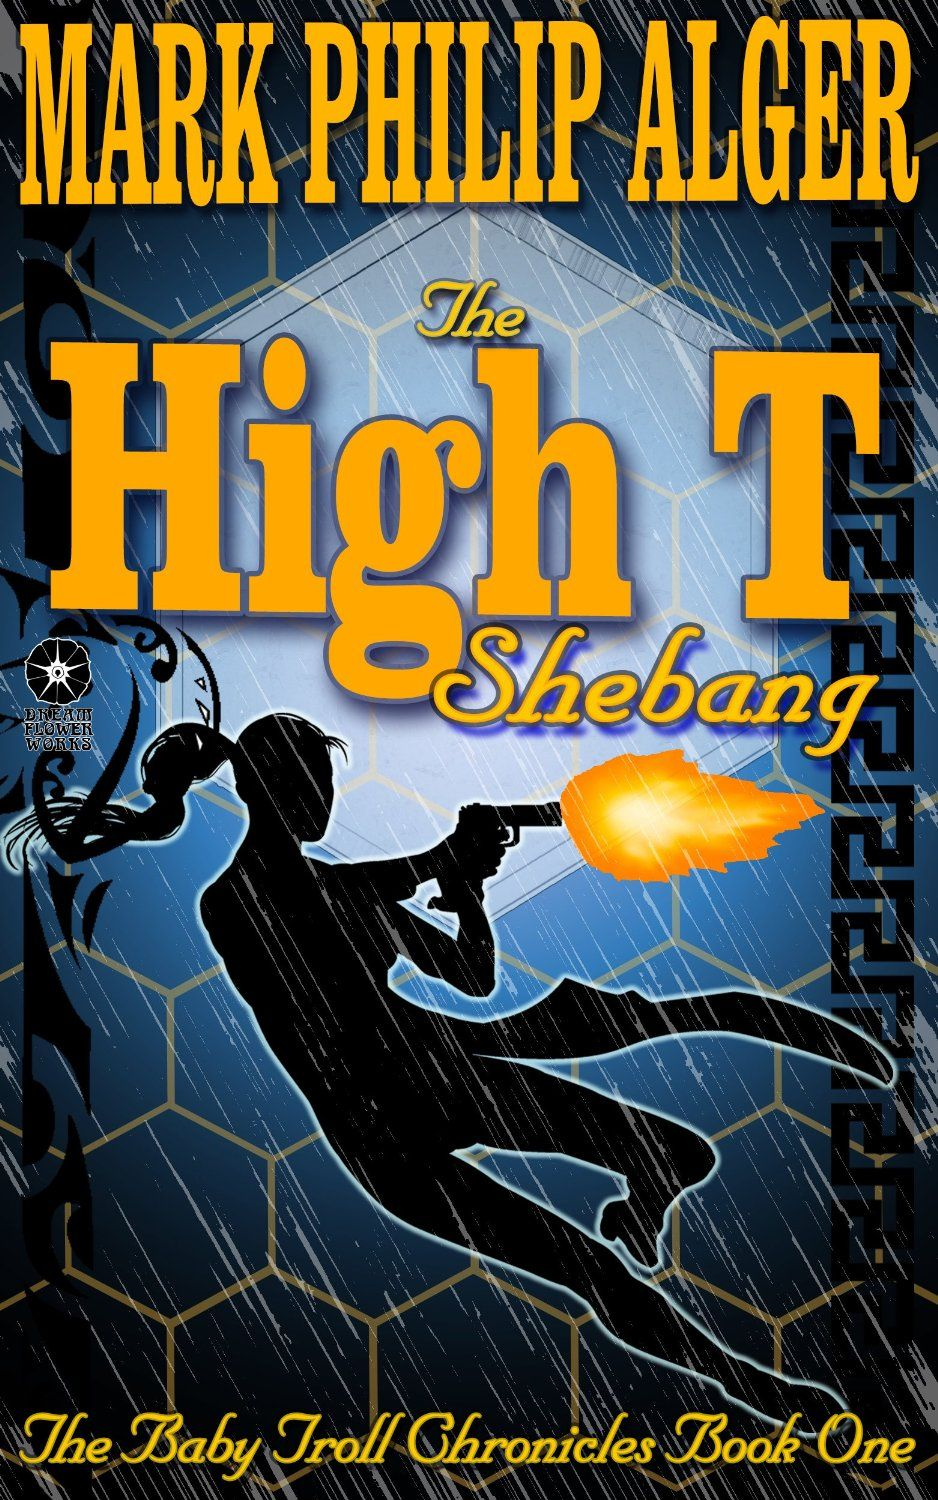 http://www.amazon.com/High-Shebang-Baby-Troll-Chronicles-ebook/dp/B00G3T42KG/ref=sr_1_1?ie=UTF8 My book. My first. Not my last. It is the opener to a series featuring a made being -- Dolly -- and Gods and Trolls and Elves and Brownies, and techno-mages, and an oddly skewed version of our world and its history. And action, adventure, romance, intrigue, and all the rest. Read it. You'll like it.